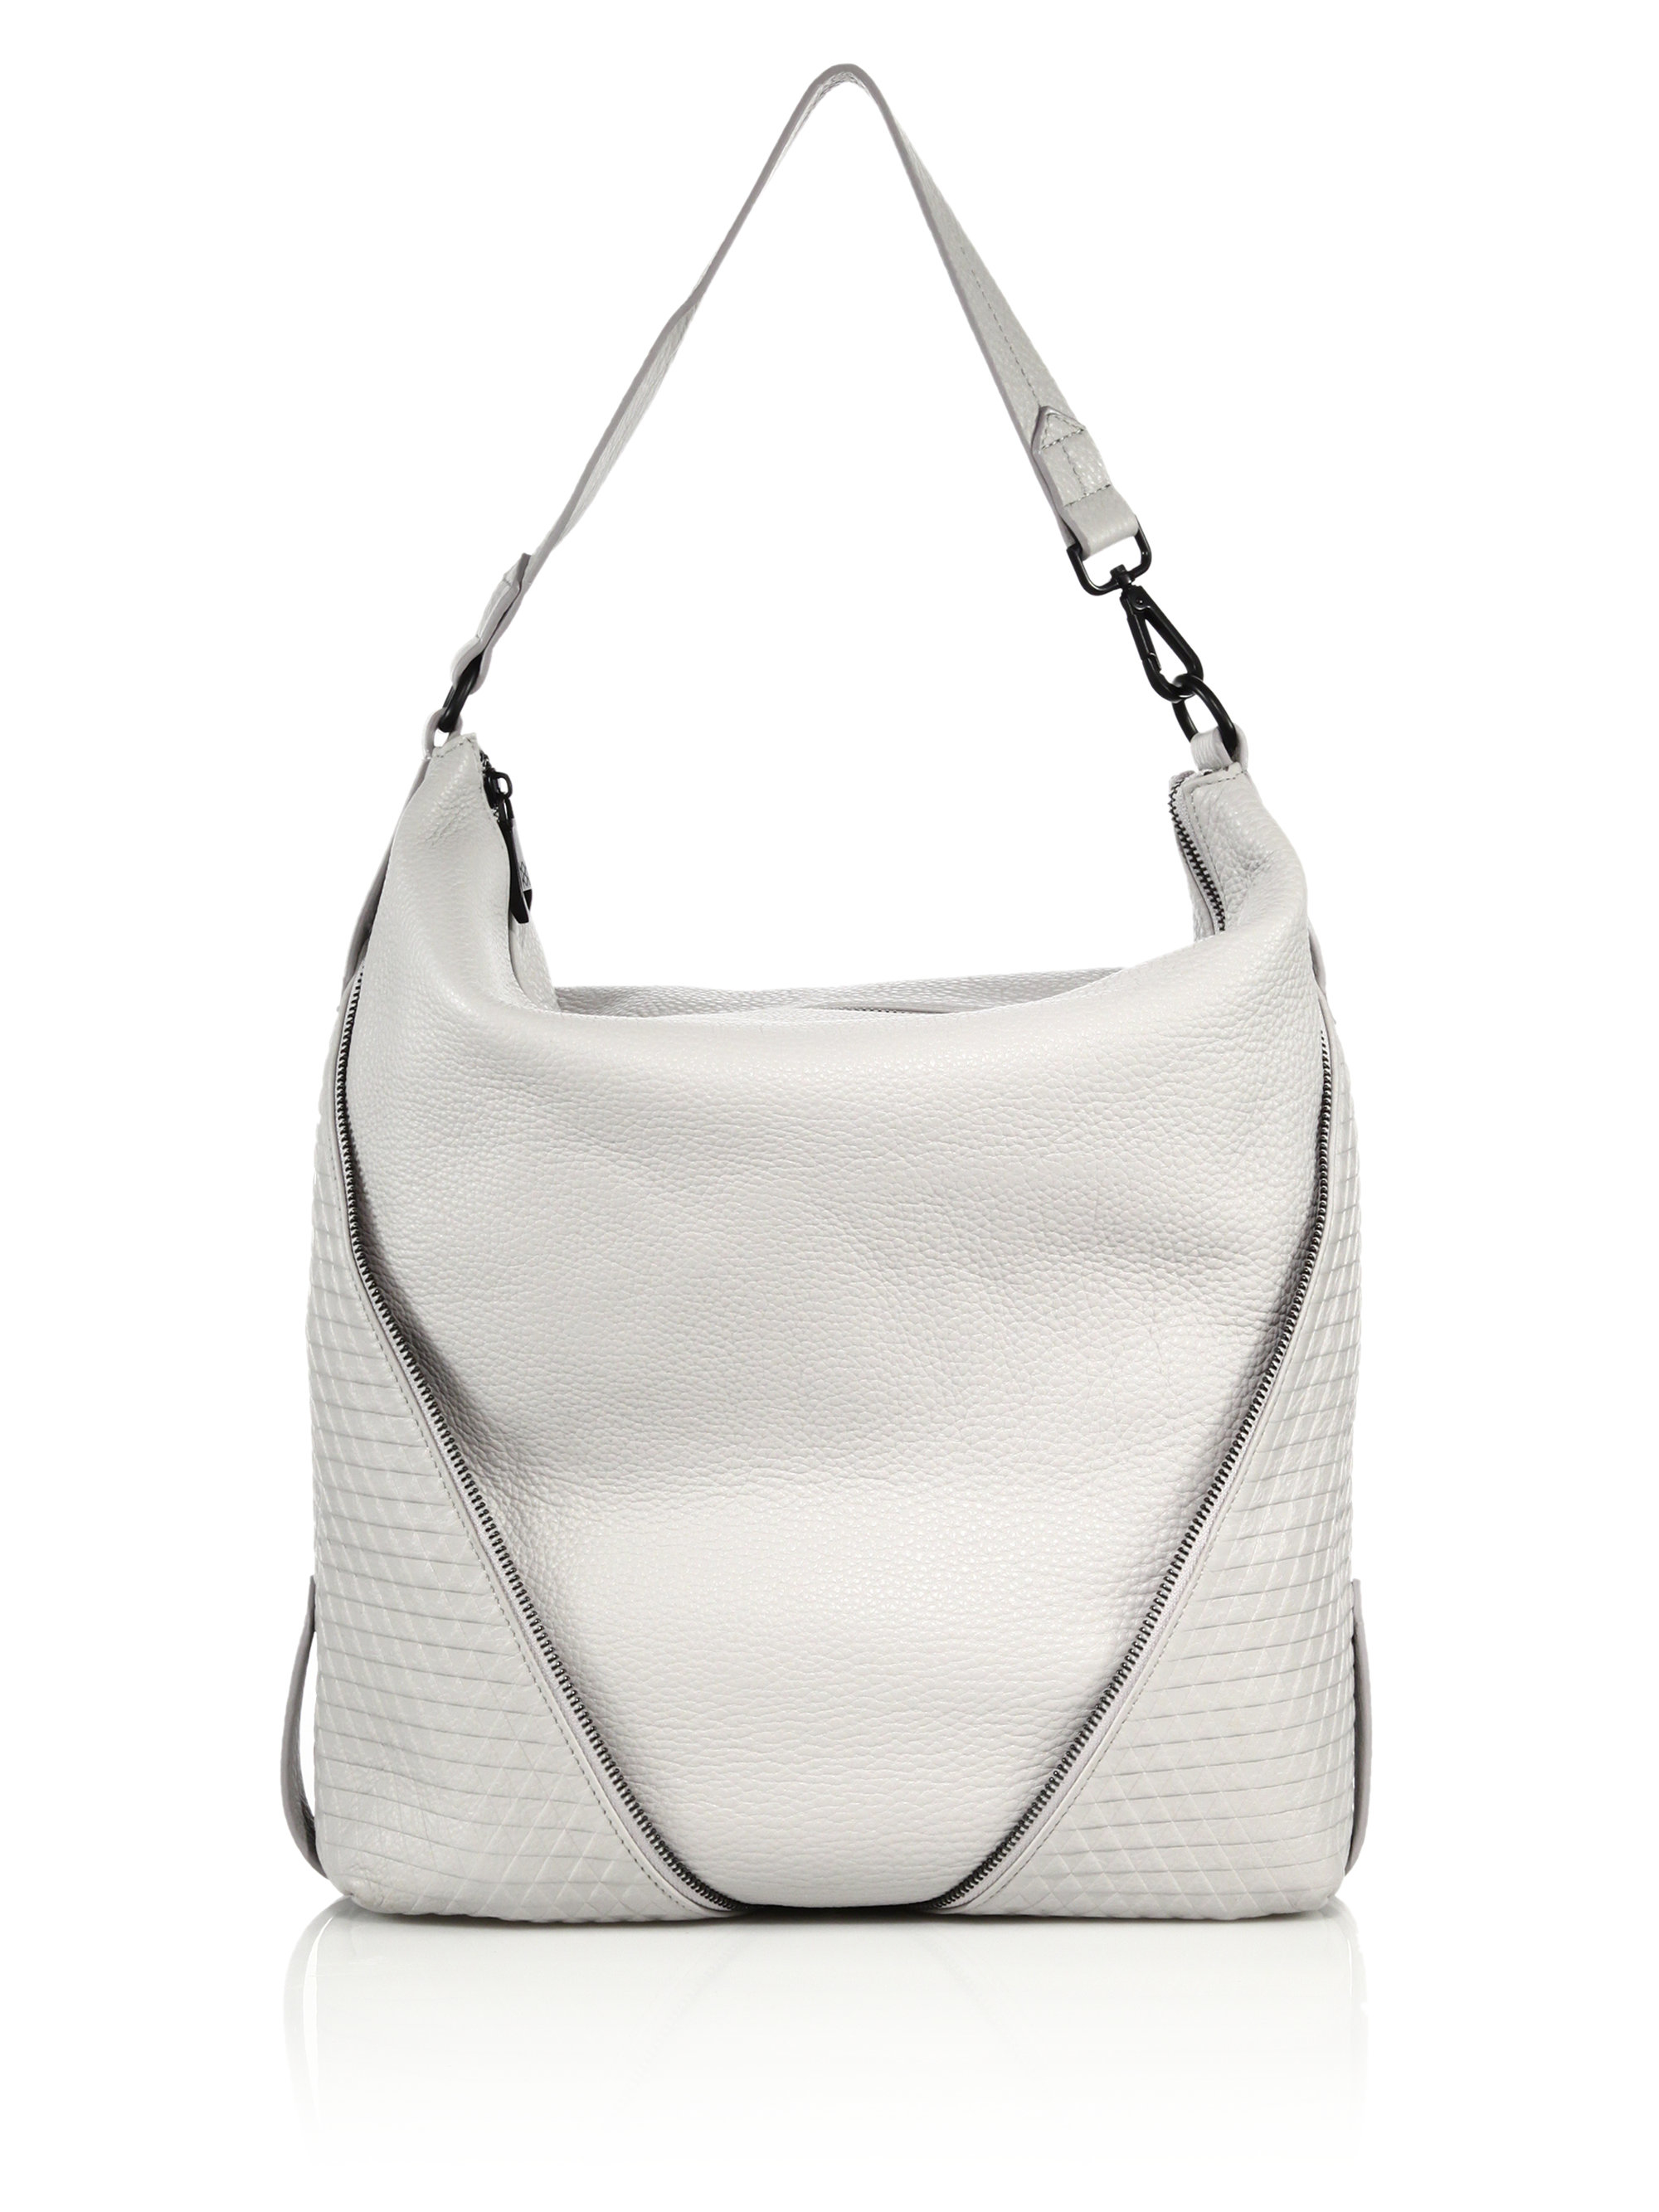 Christopher kon Zipper-trimmed Topstitched Leather Hobo Bag in ...